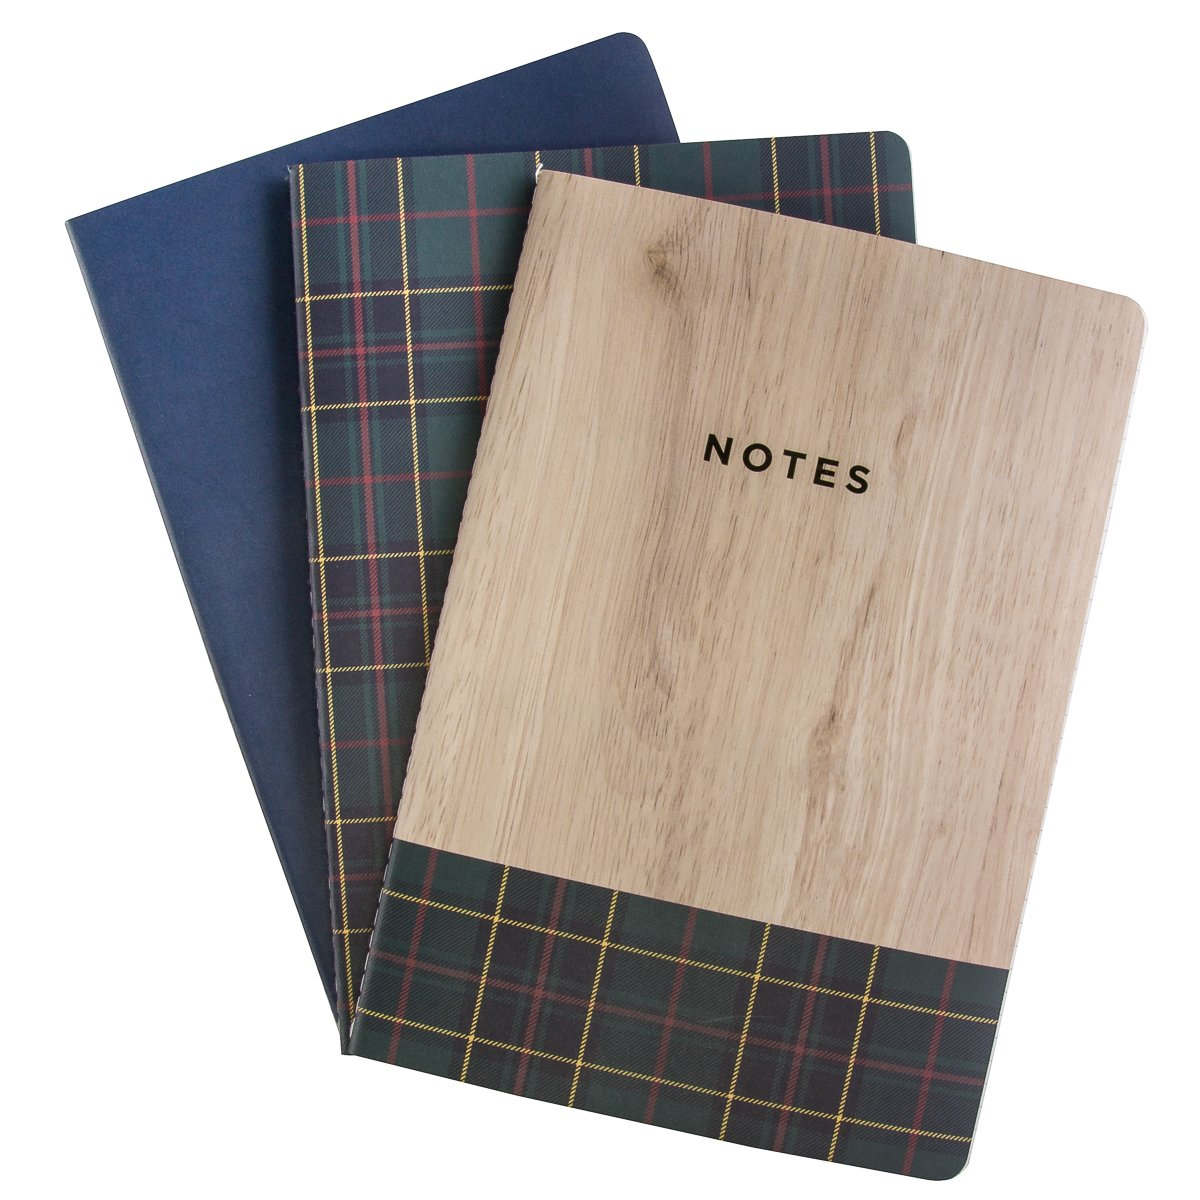 """George Stanley (3 Pack) Journals to Write in 10 x 7"""" Notebook Soft Cover Ruled 120 Lined Pages Bulk by George Stanley (Image #1)"""